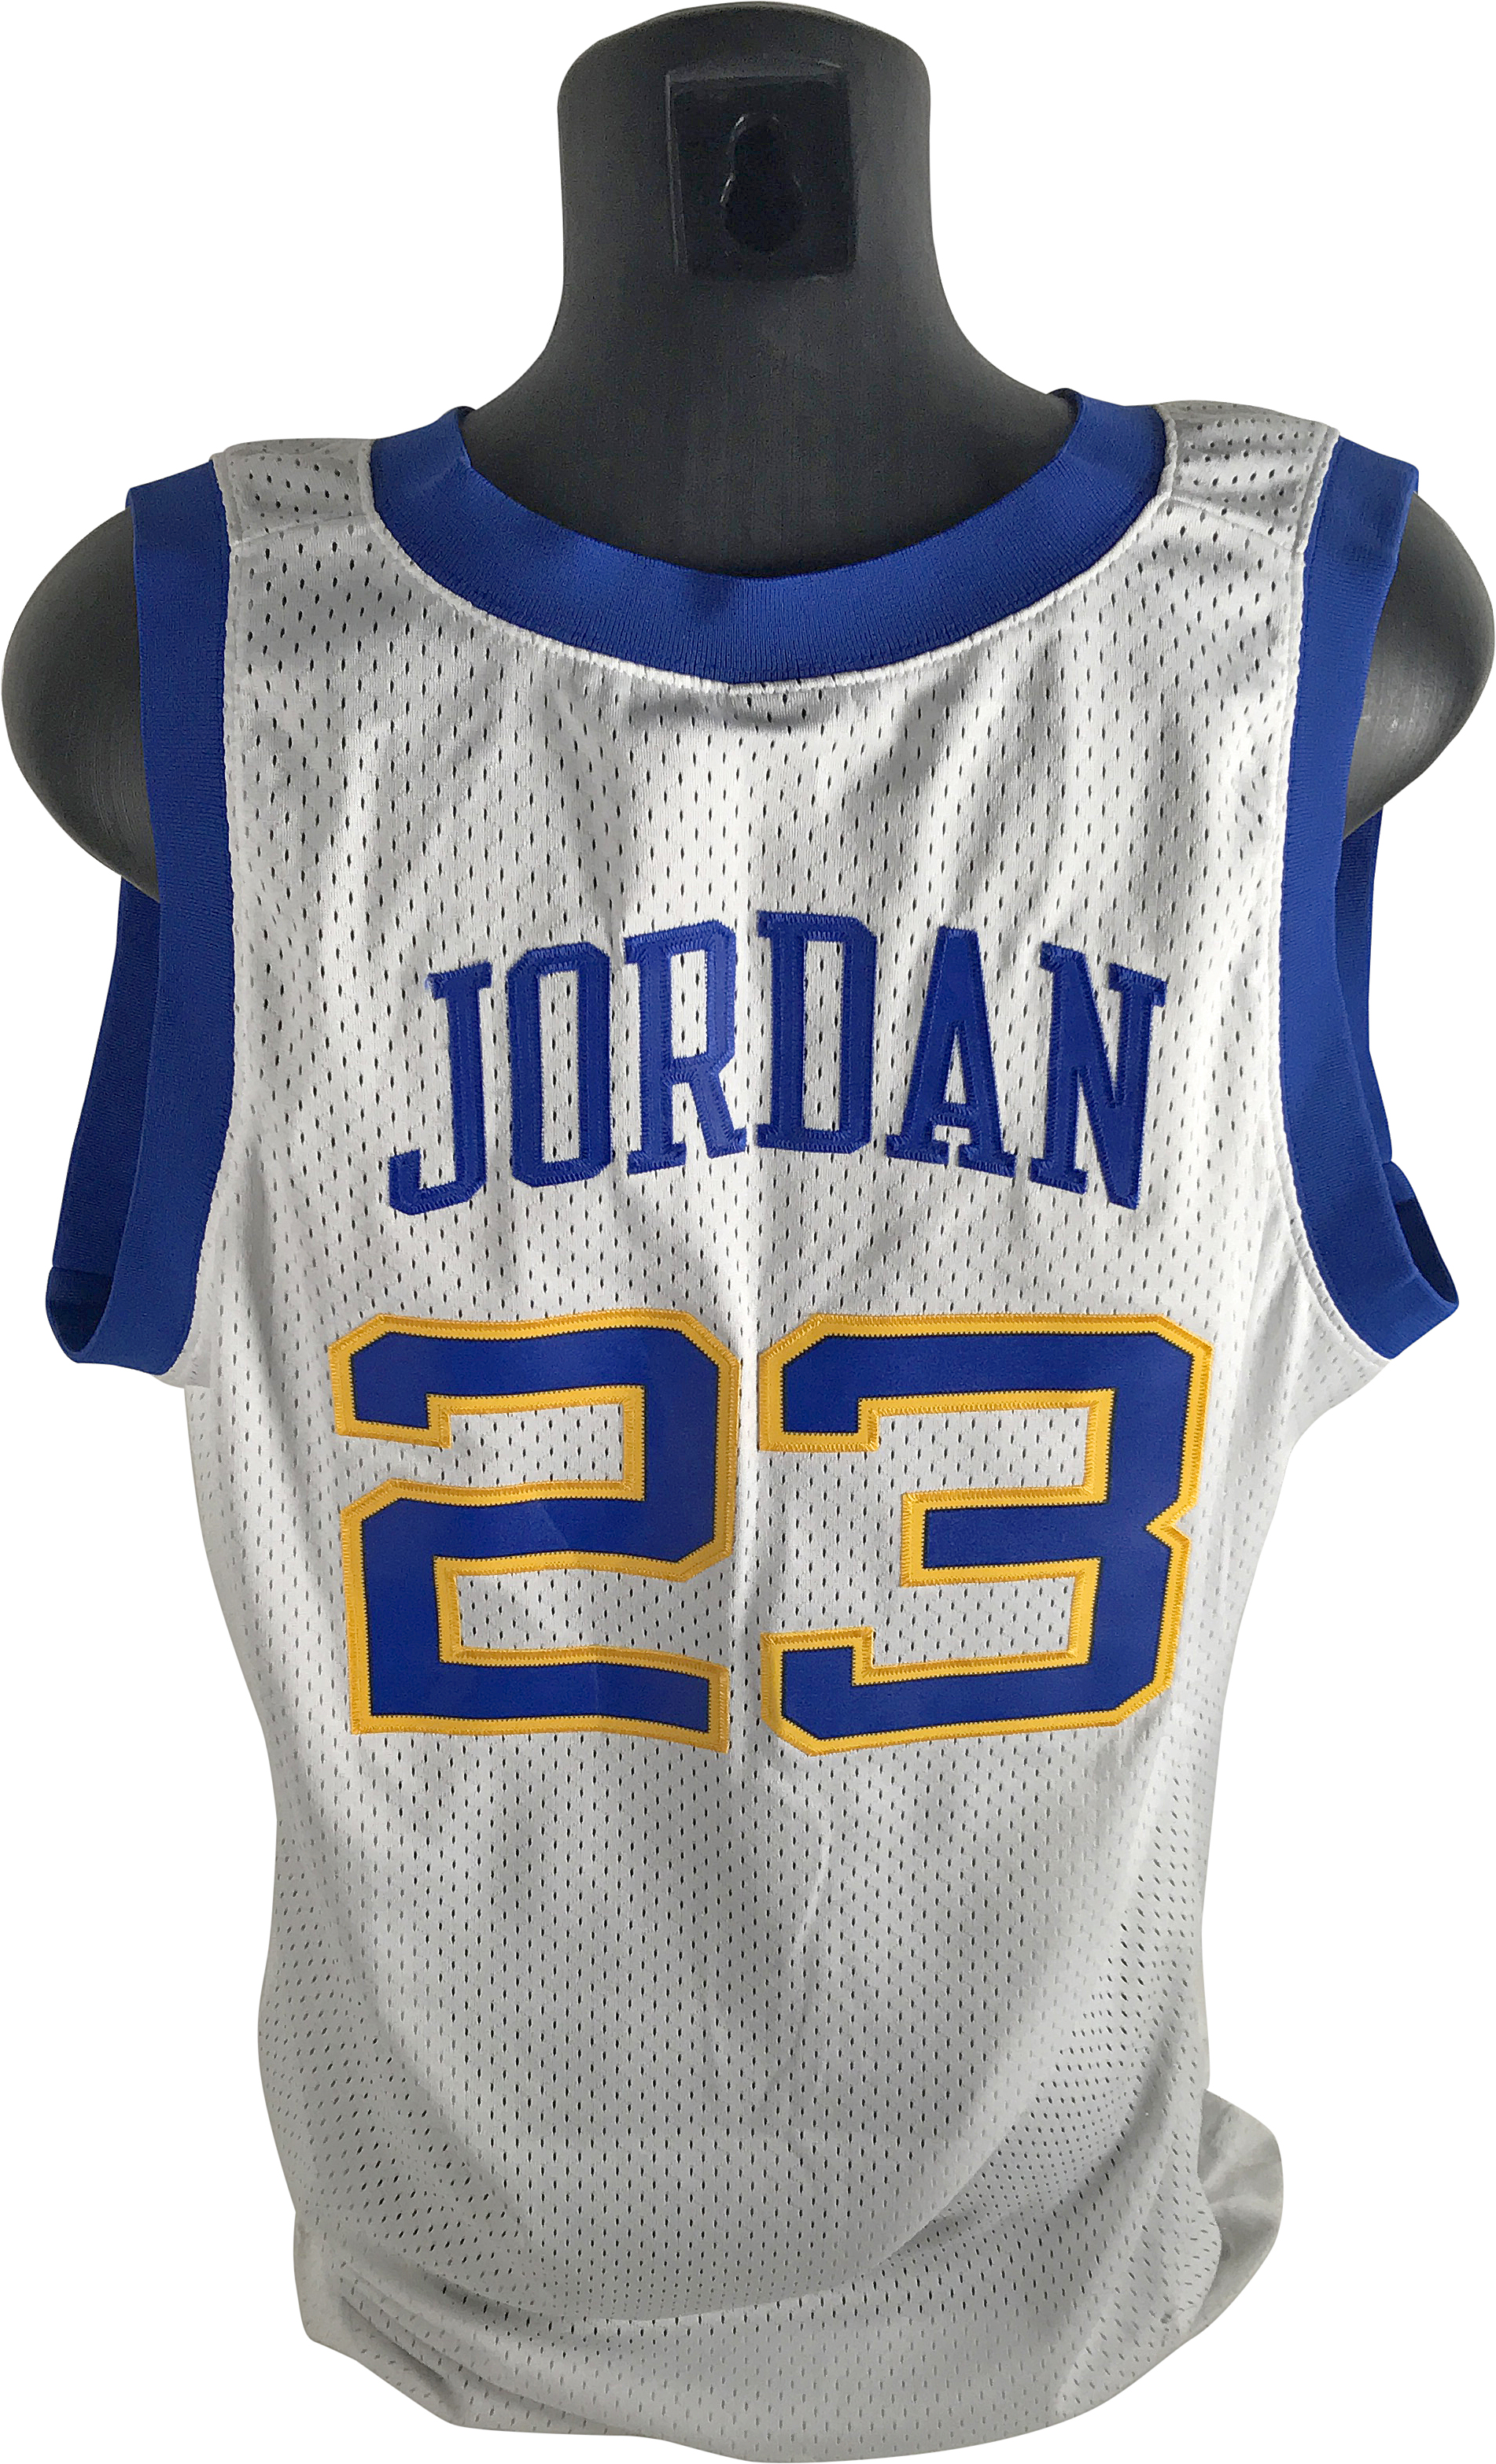 5bc0a4607fa3 ... Michael Jordan Rare Limited Edition Signed 1980 Style Laney High School  Jersey (Upper Deck)